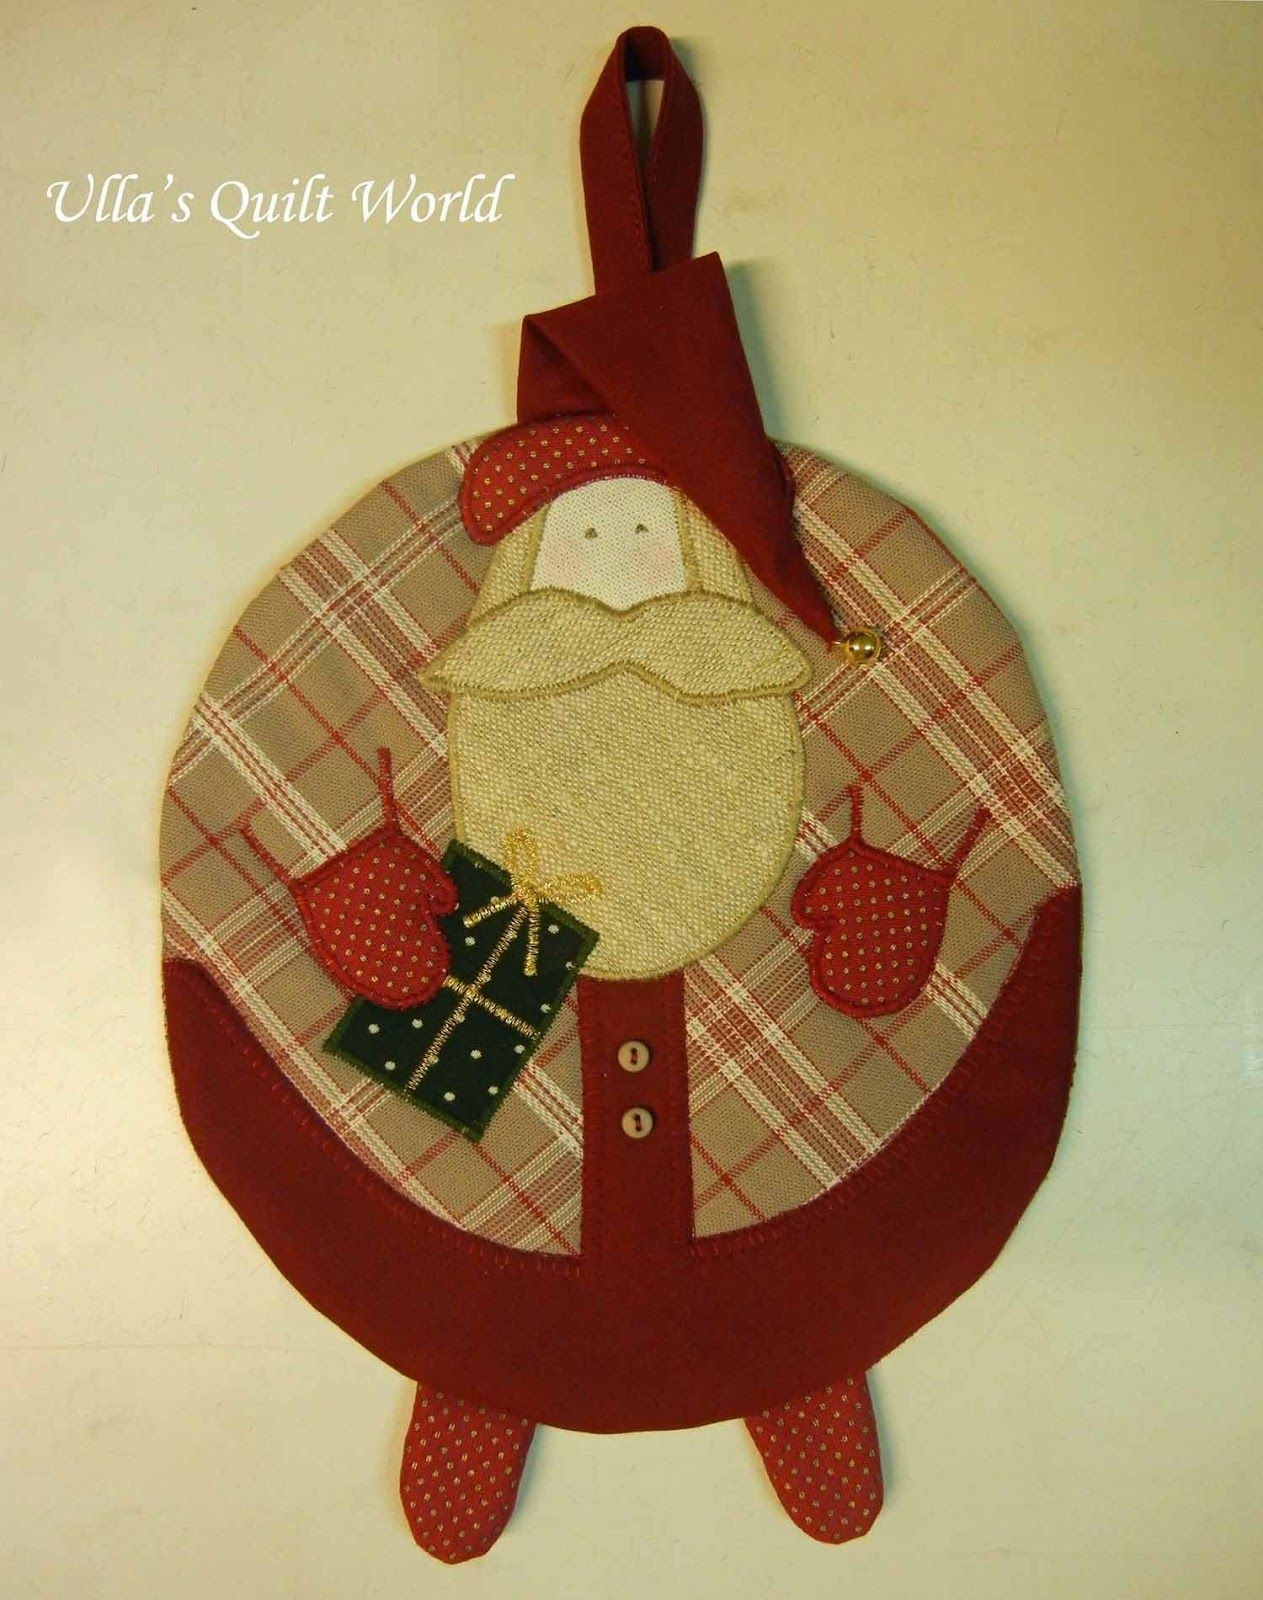 Ulla's Quilt World: Quilted Santa Claus potholder and PATTERN